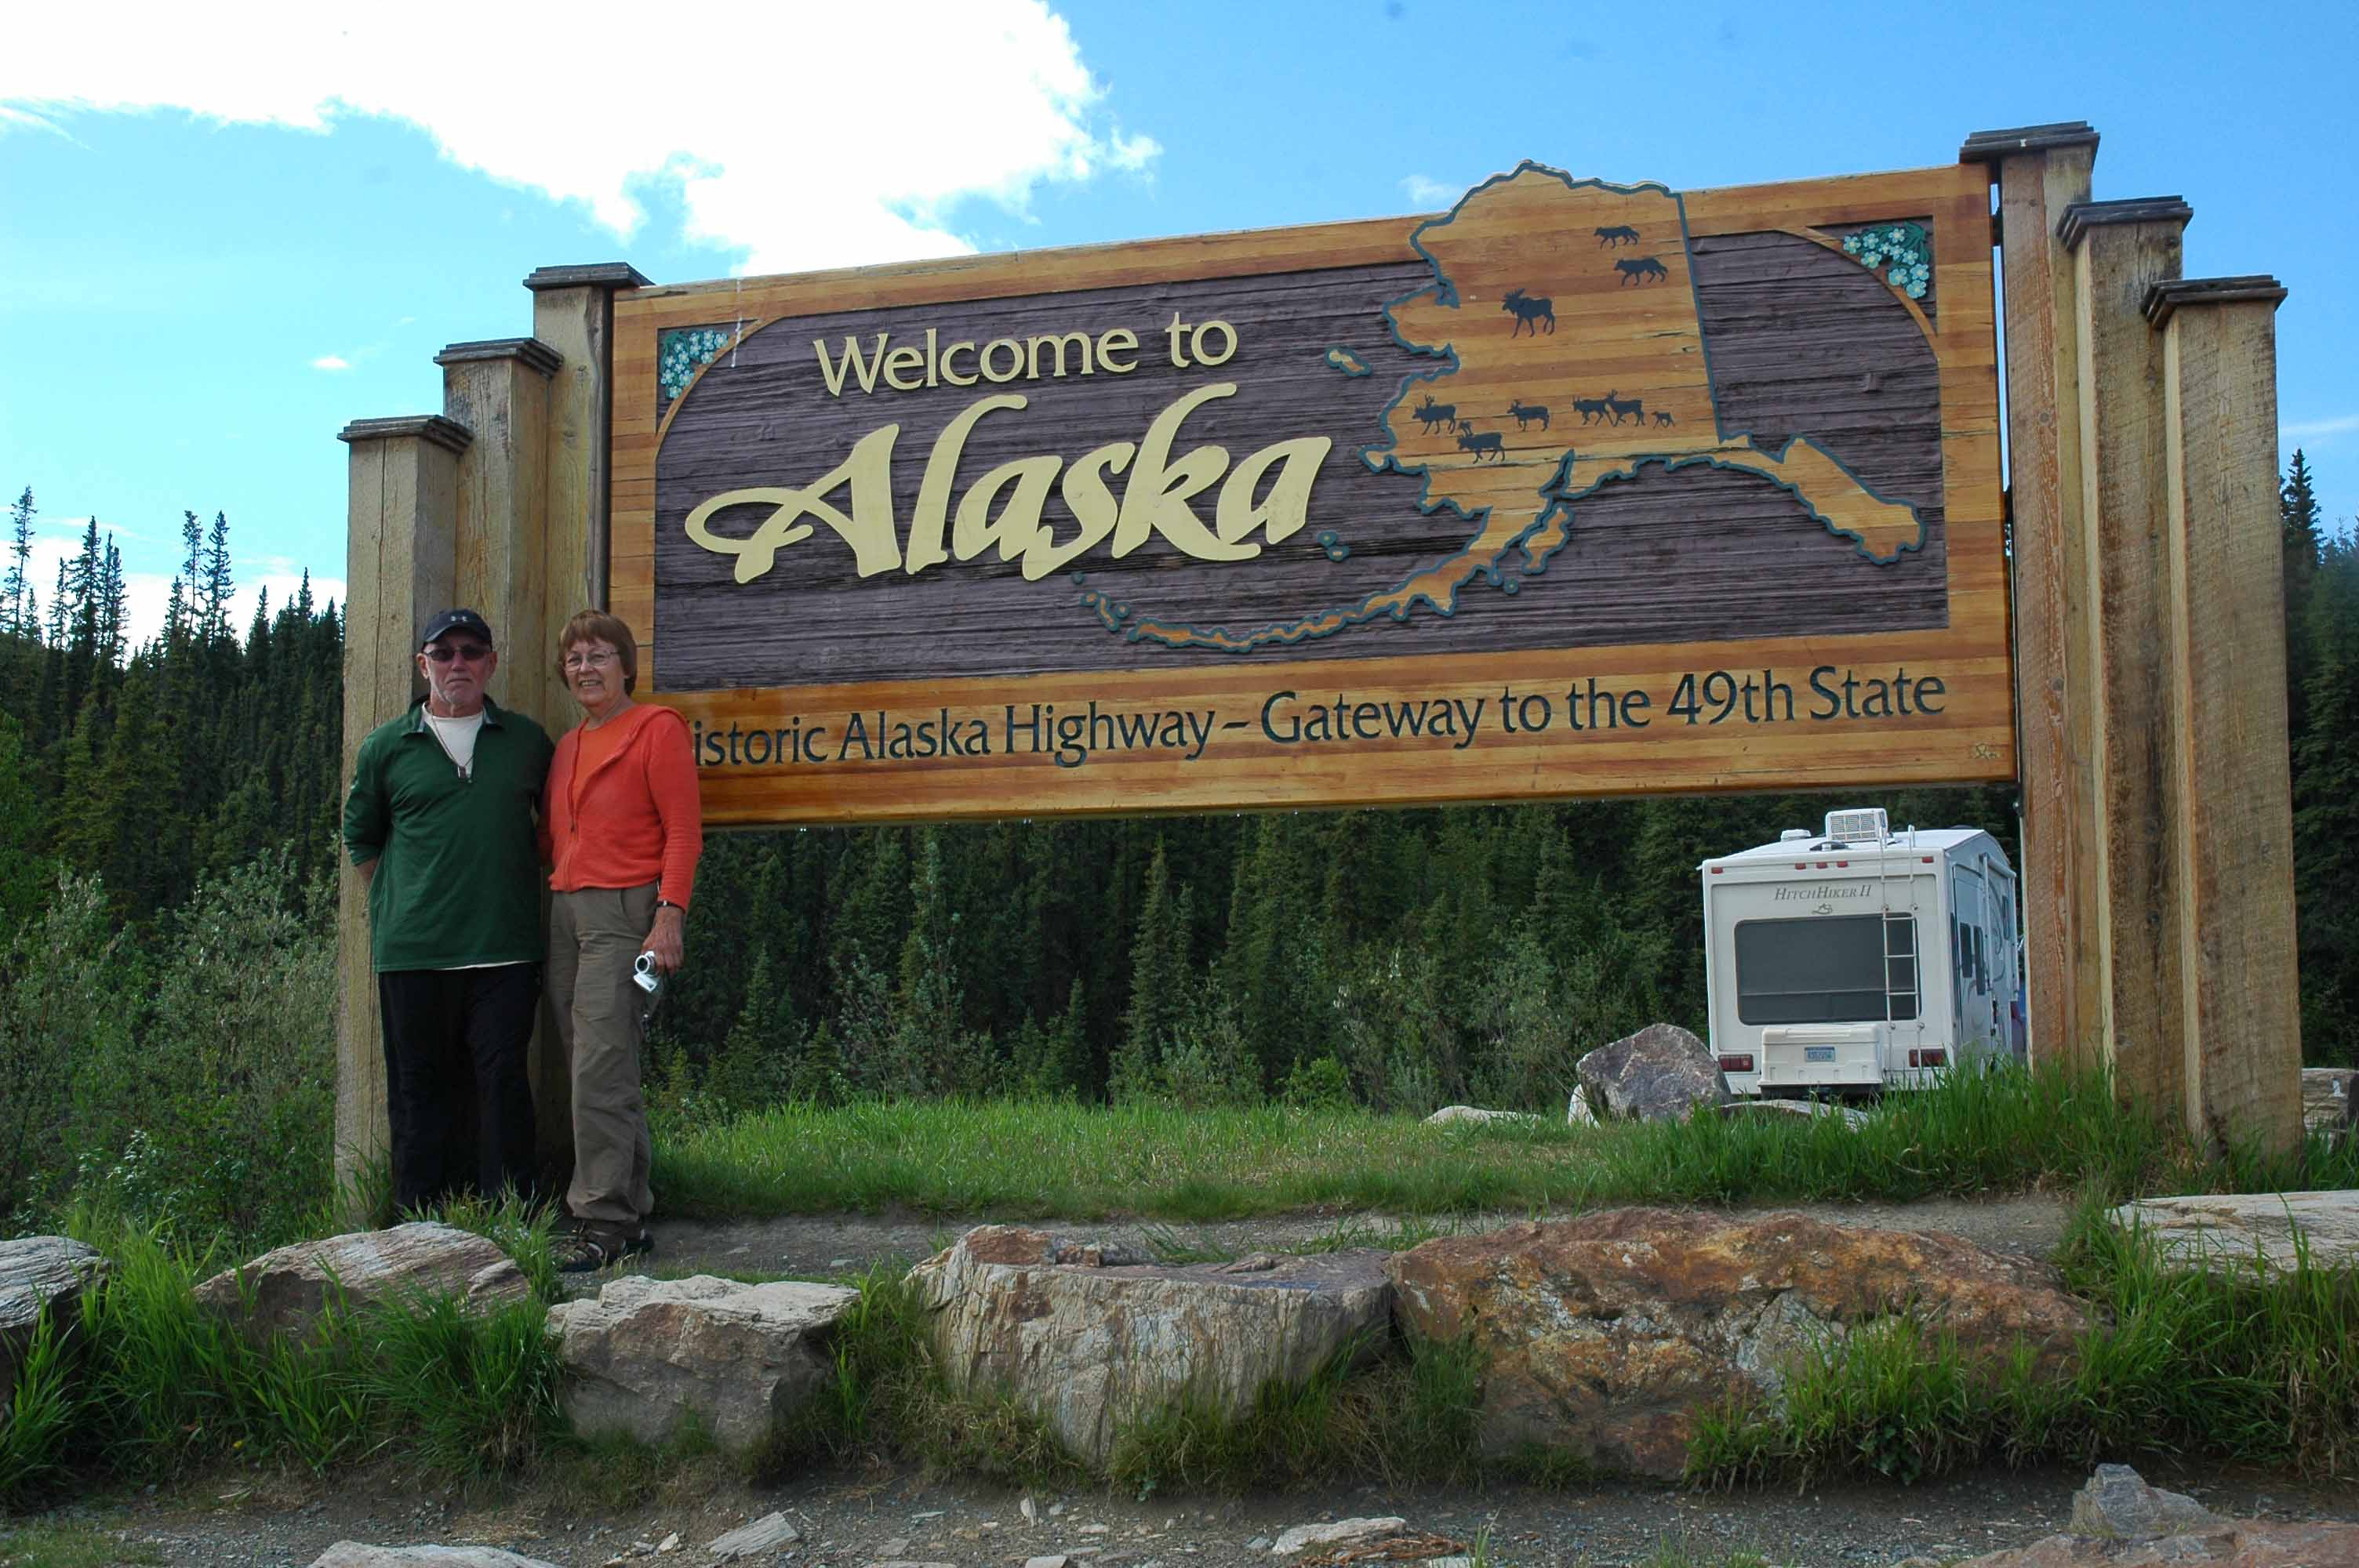 The goal is Alaska - We made it!